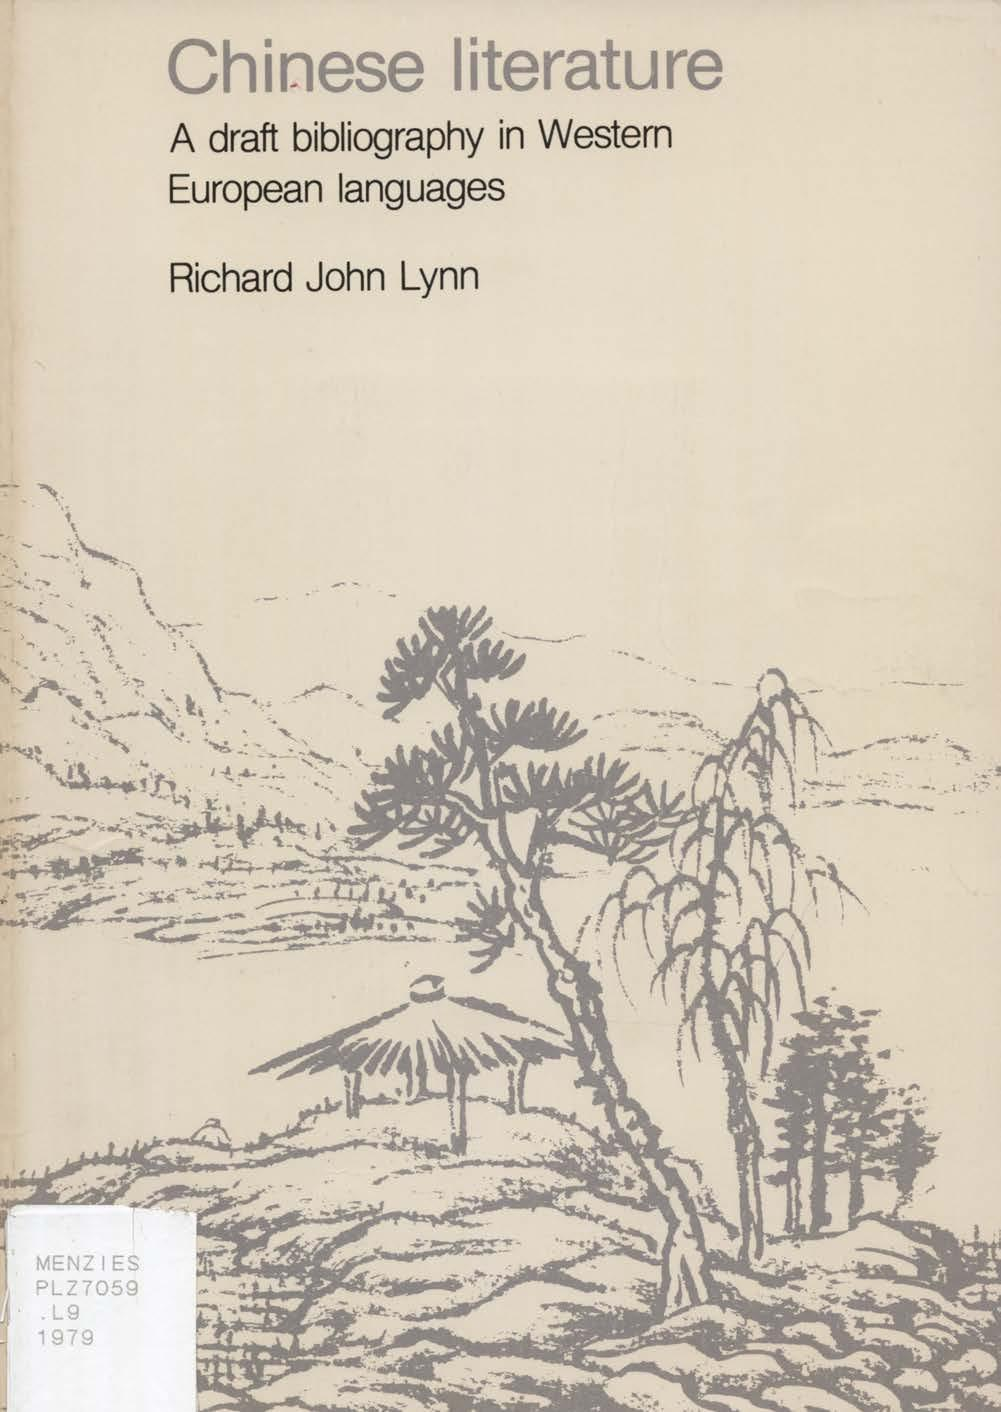 Chinese literature A draft bibliography in Western European